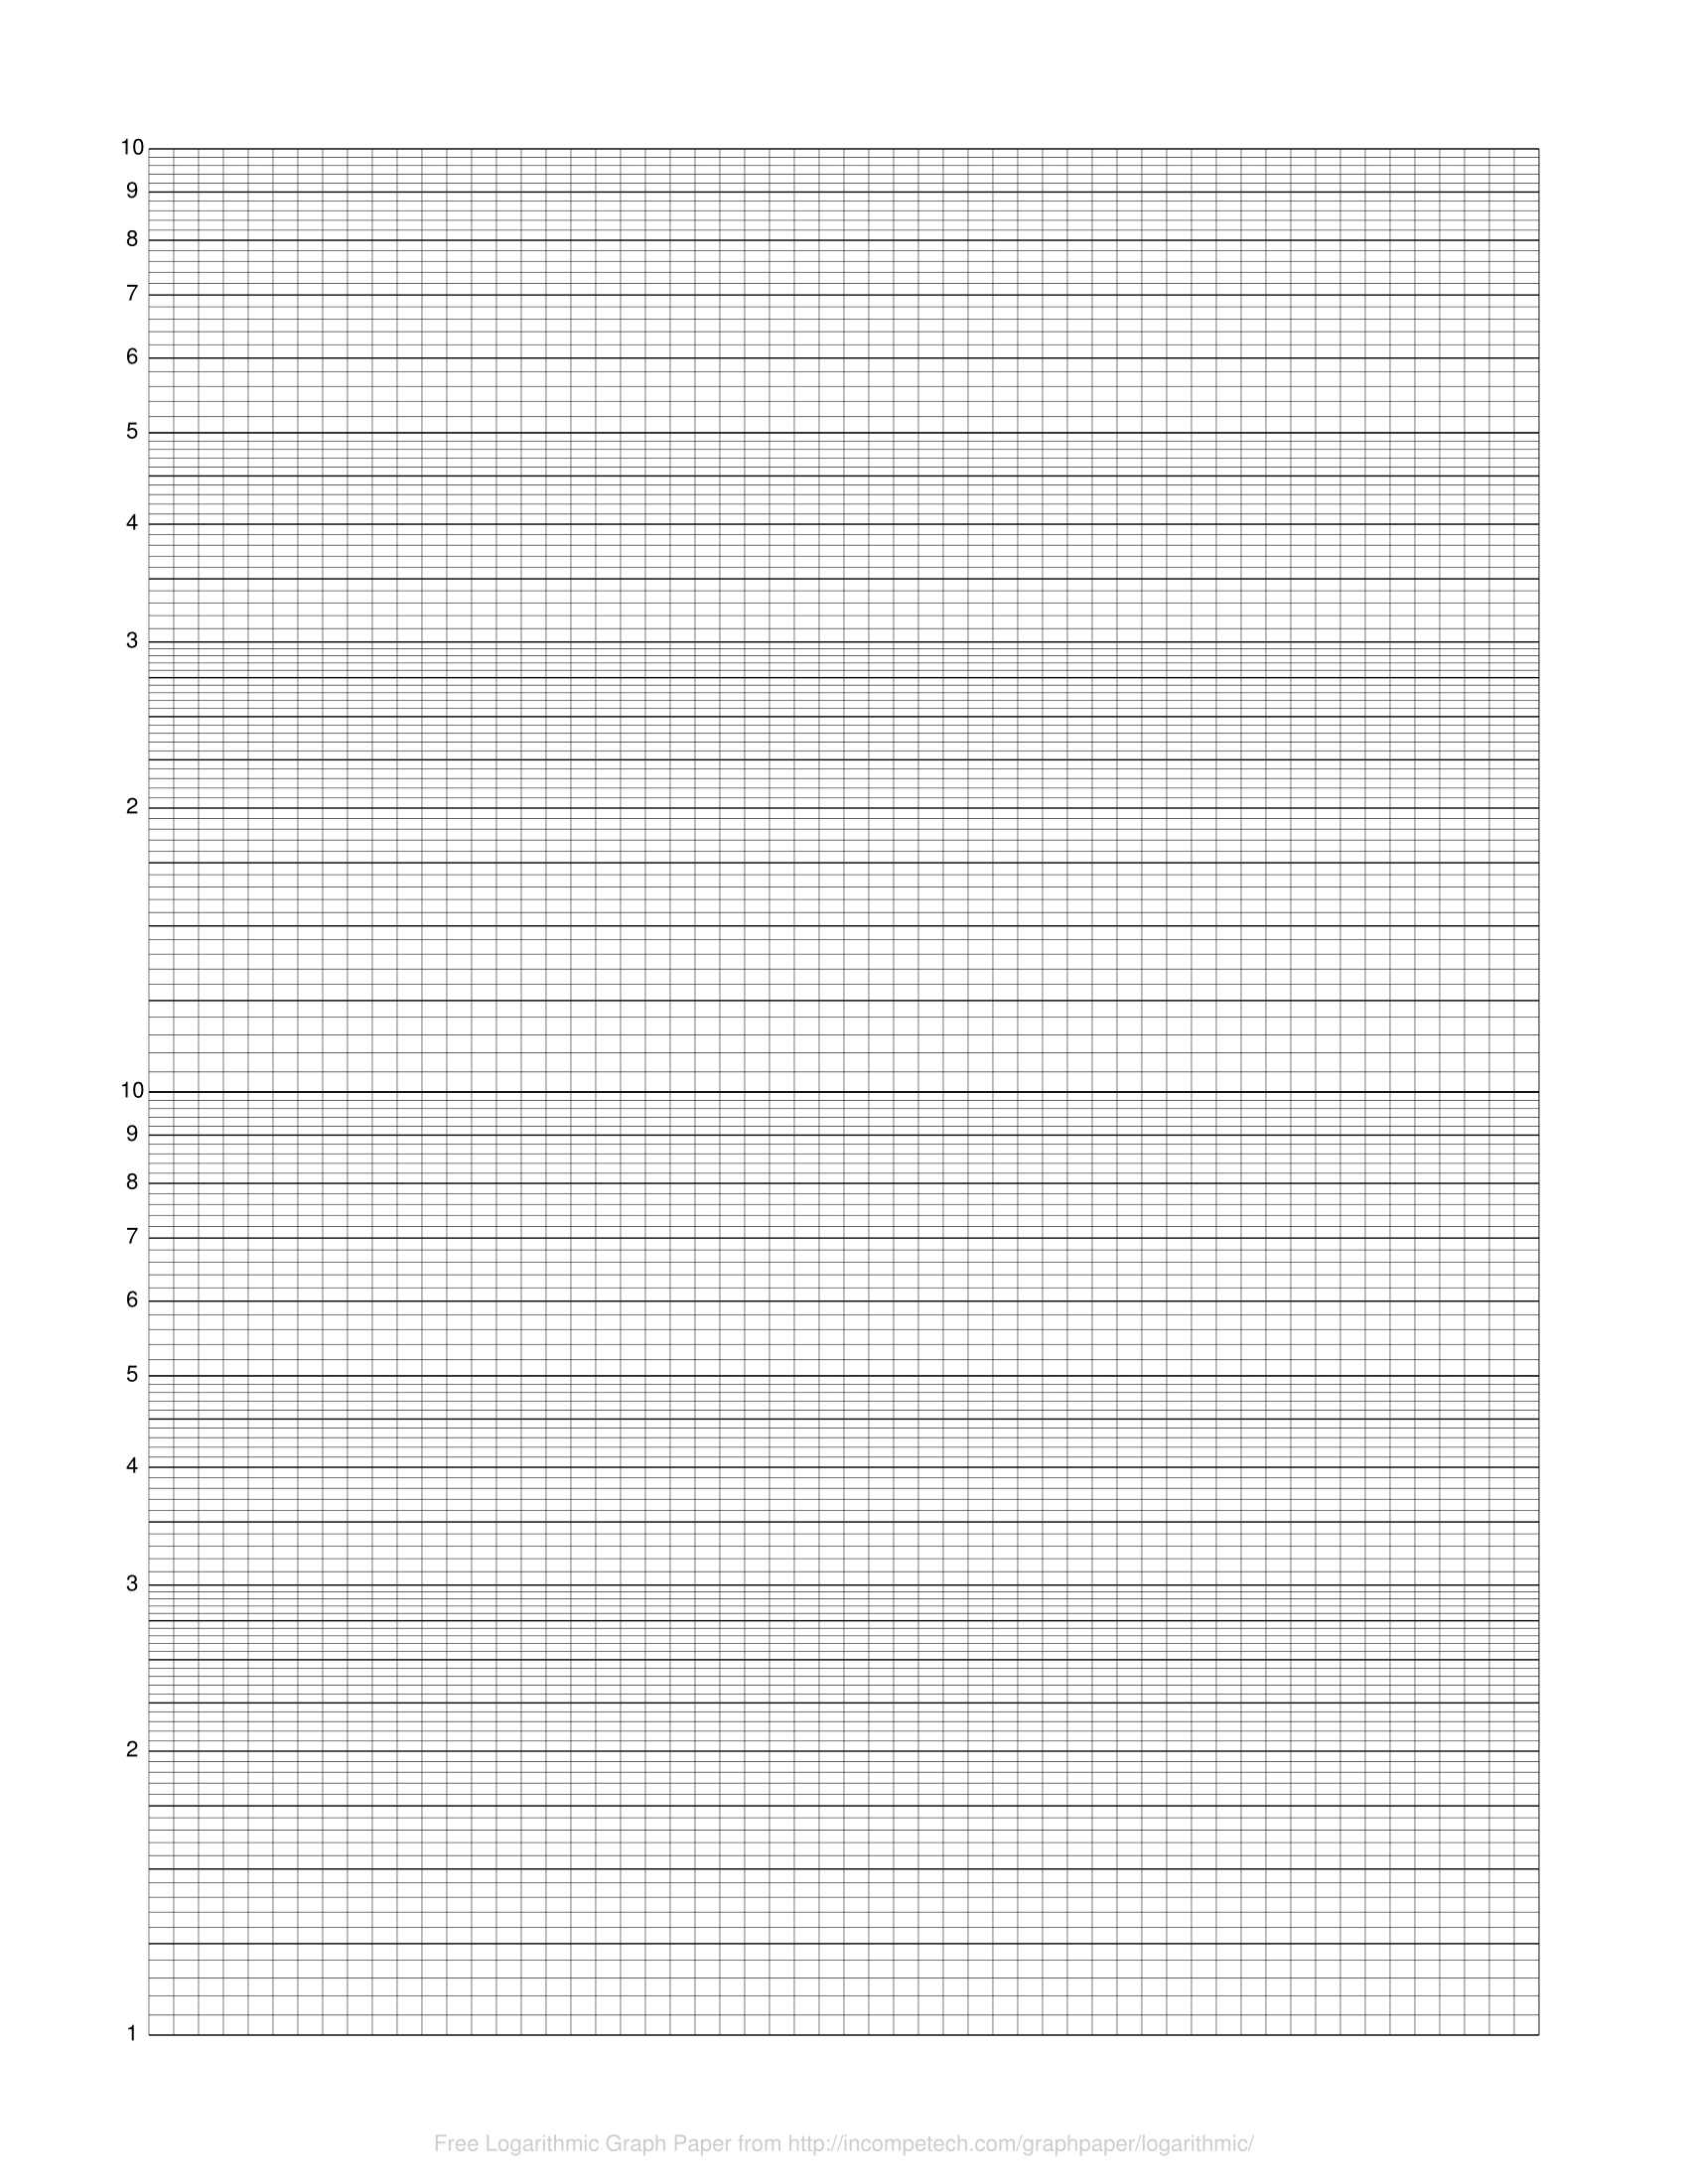 Free Online Graph Paper / Logarithmic